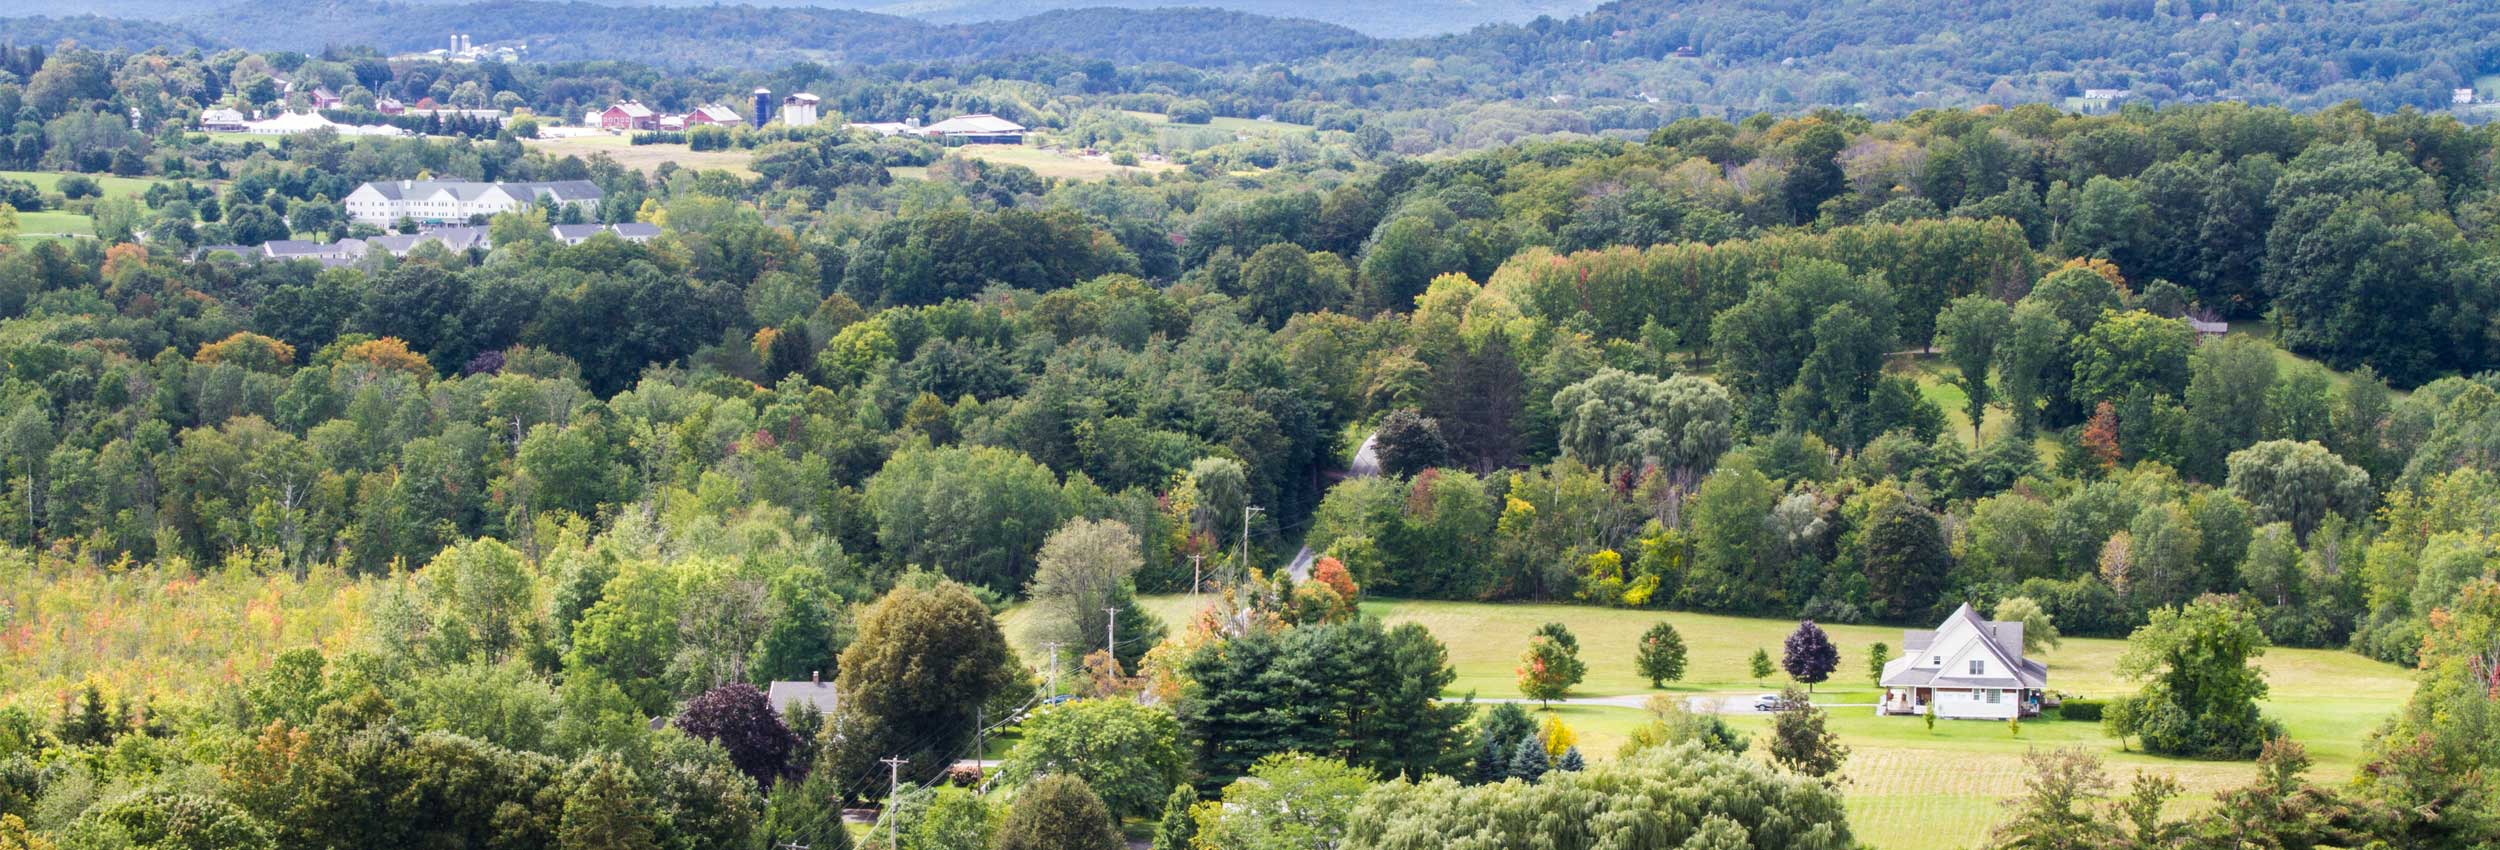 View from the Bennington Monument